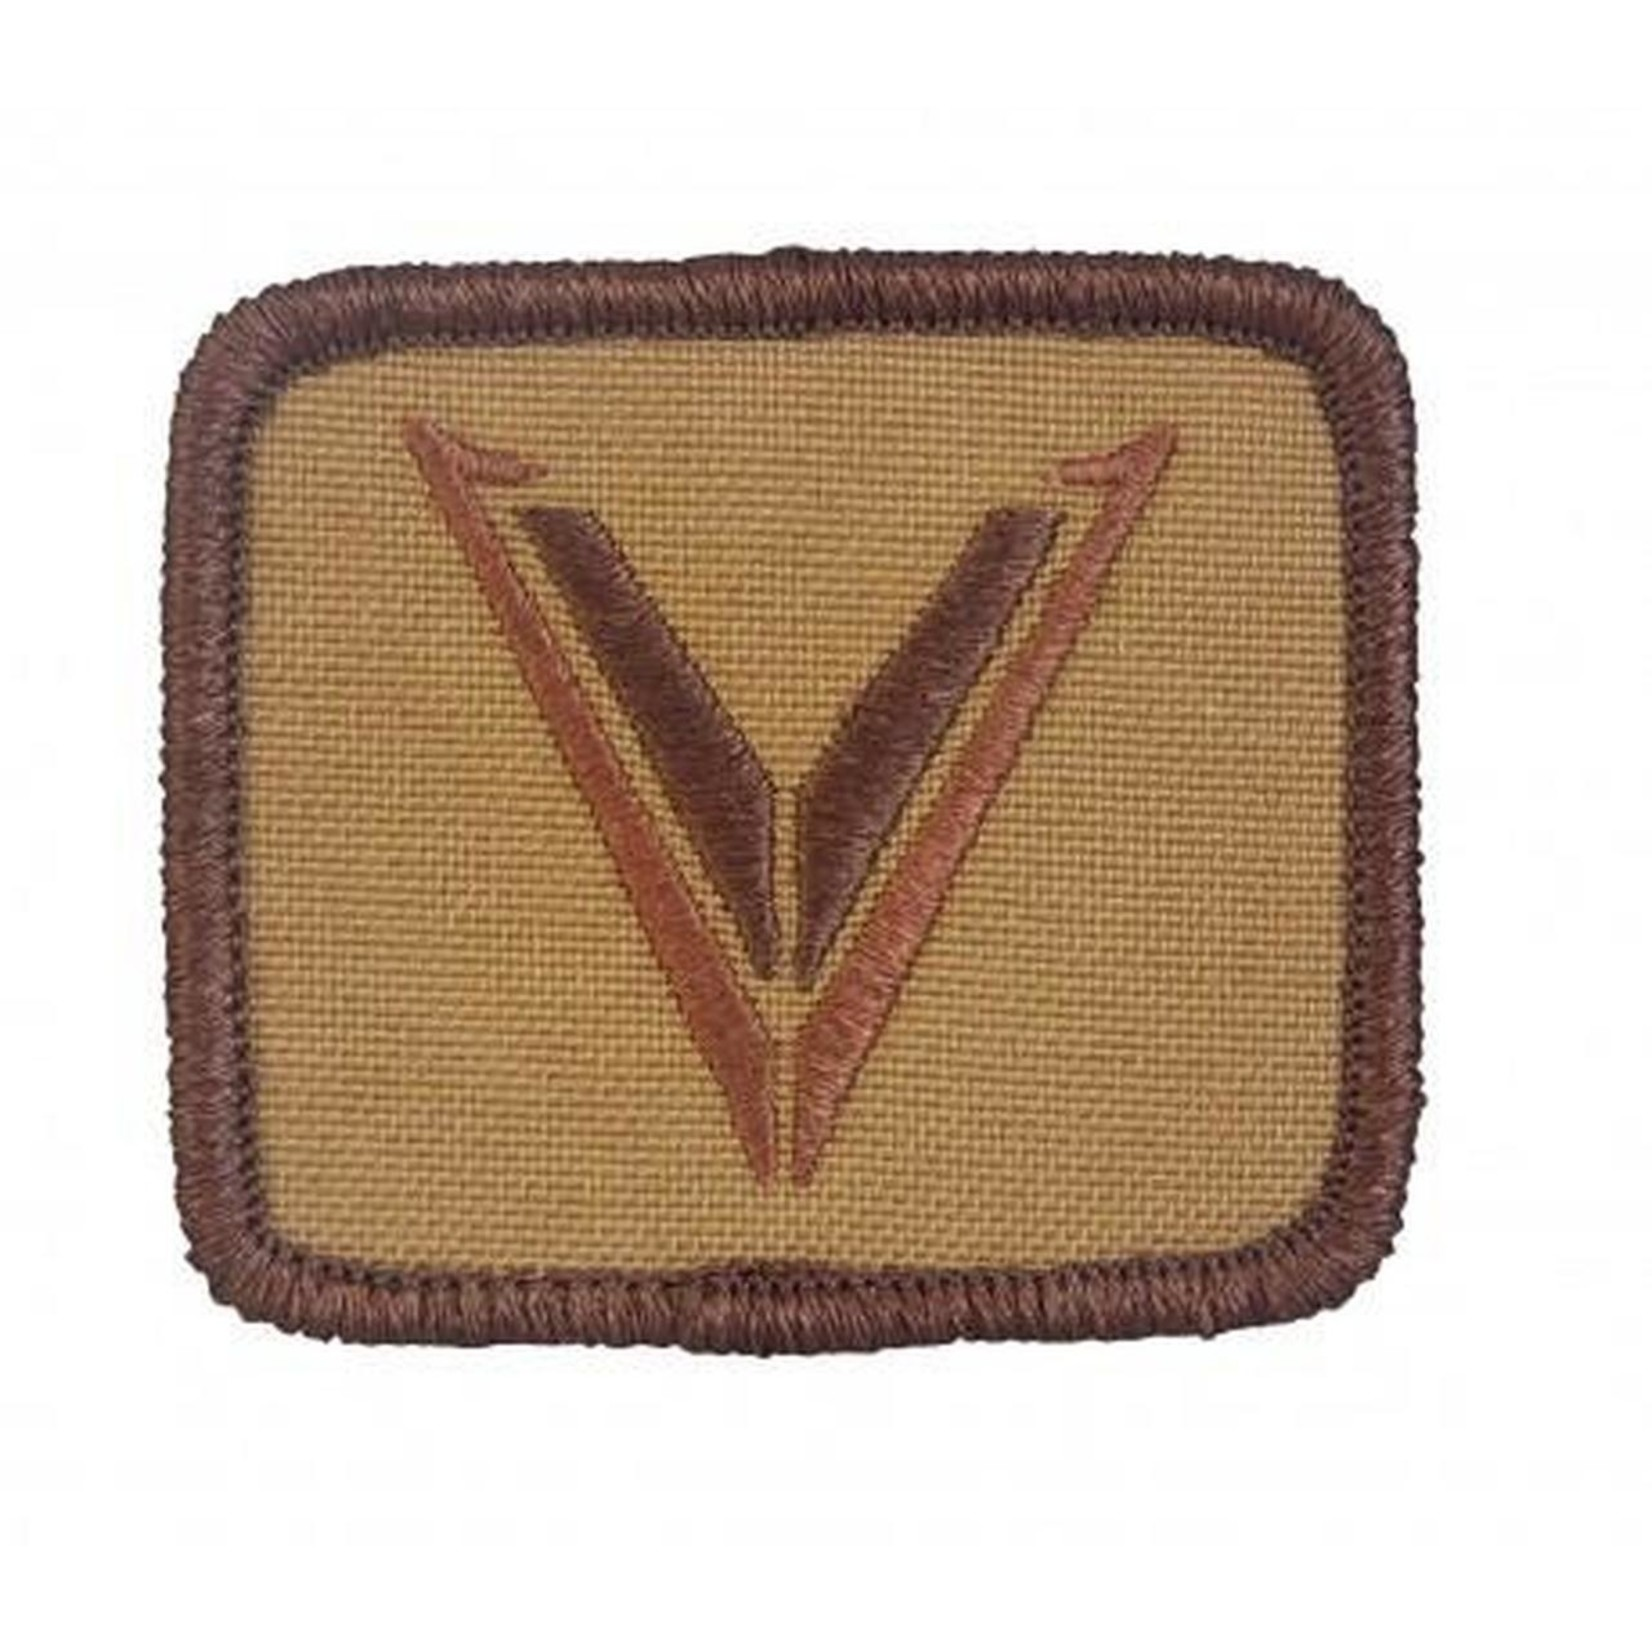 VELOCITY SYSTEMS LOGO PATCH